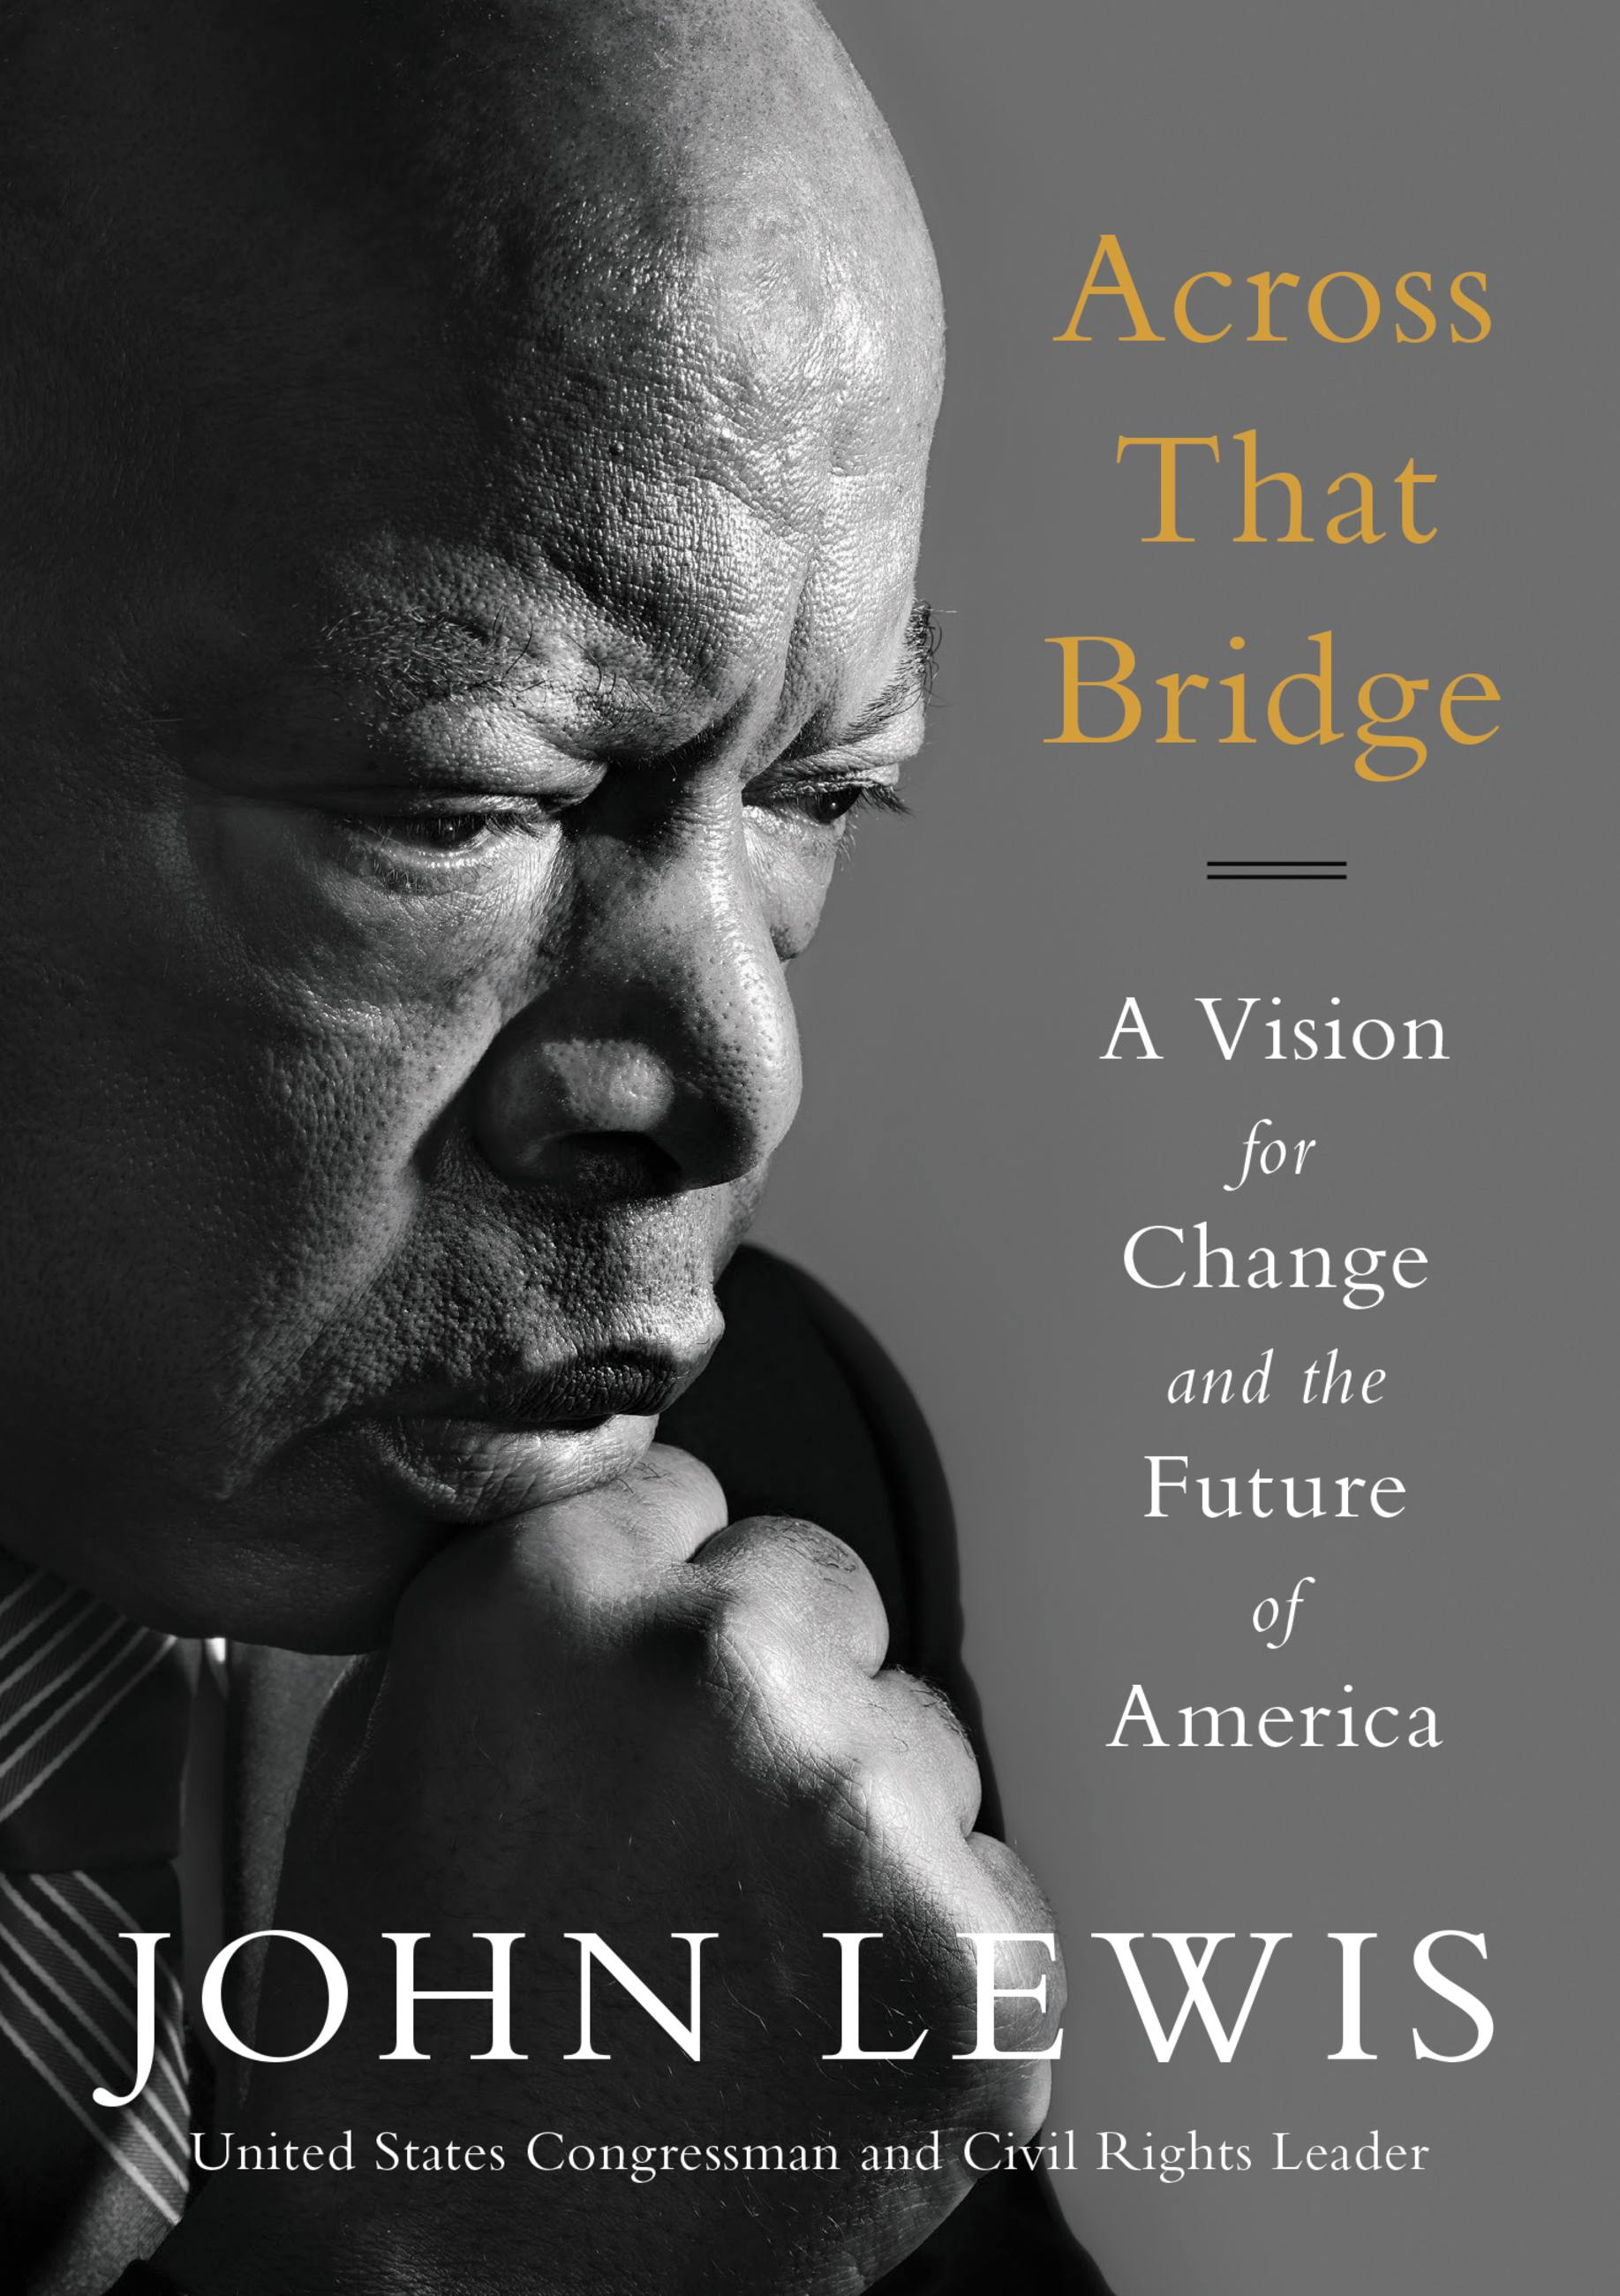 Across That Bridge [electronic resource] : Life Lessons and a Vision for Change